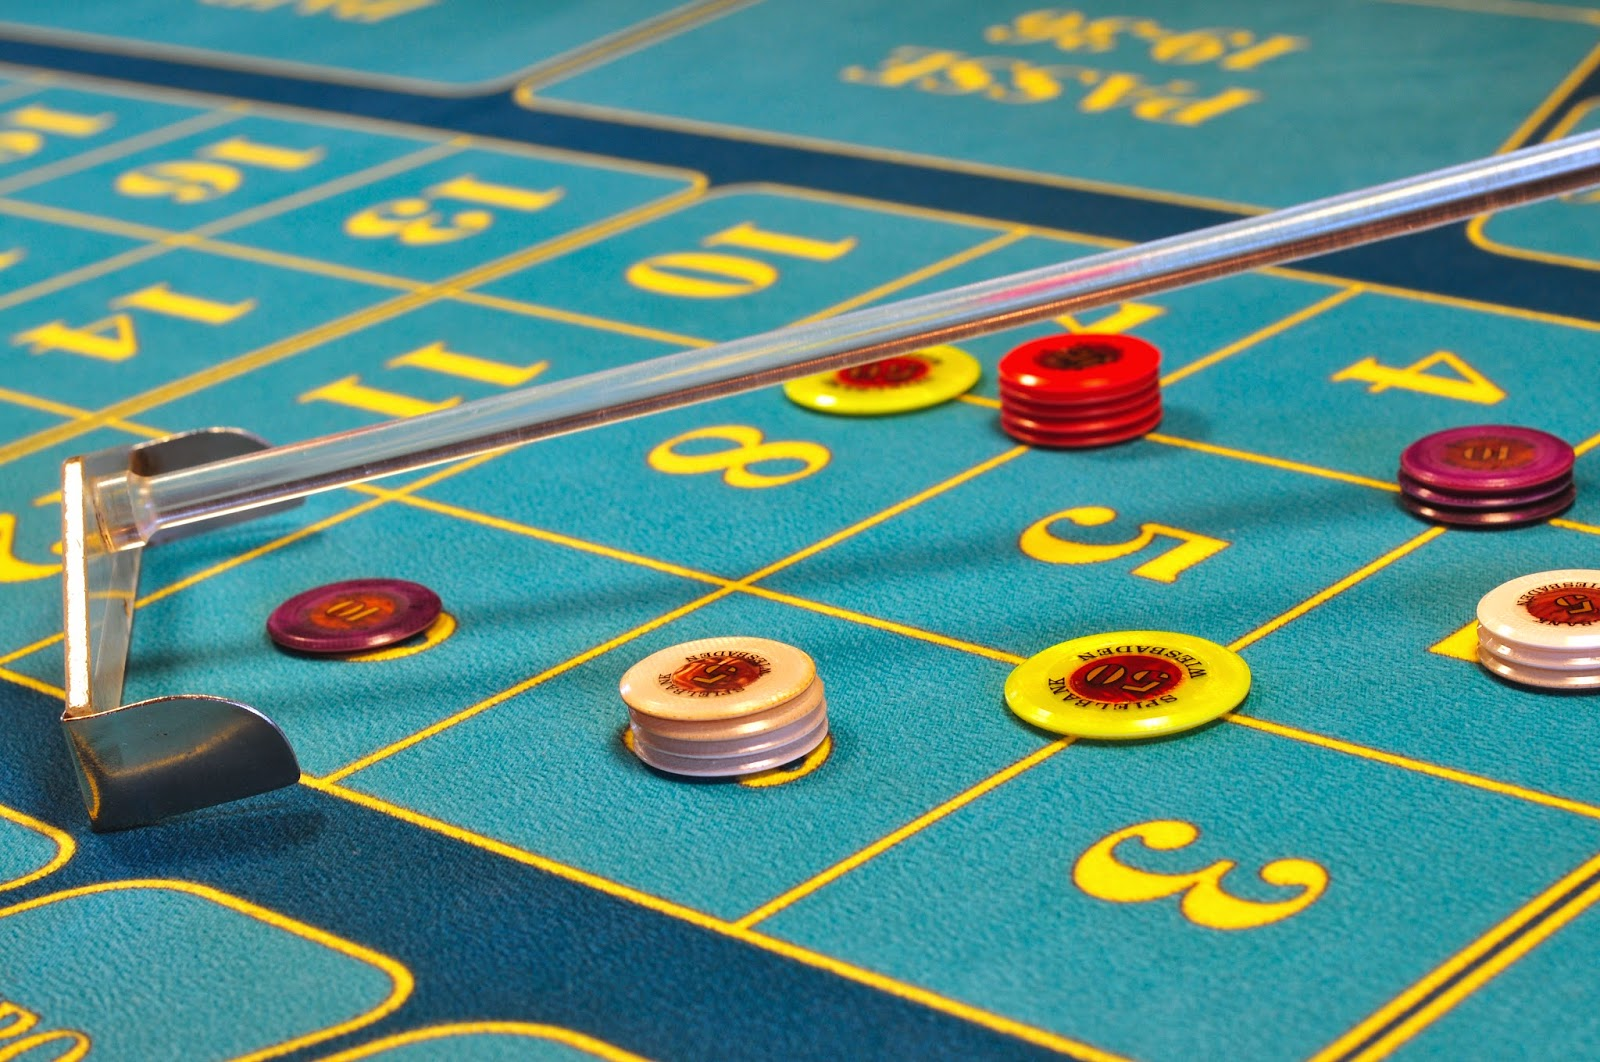 Gambling regulation requires agreement to terms and conditions